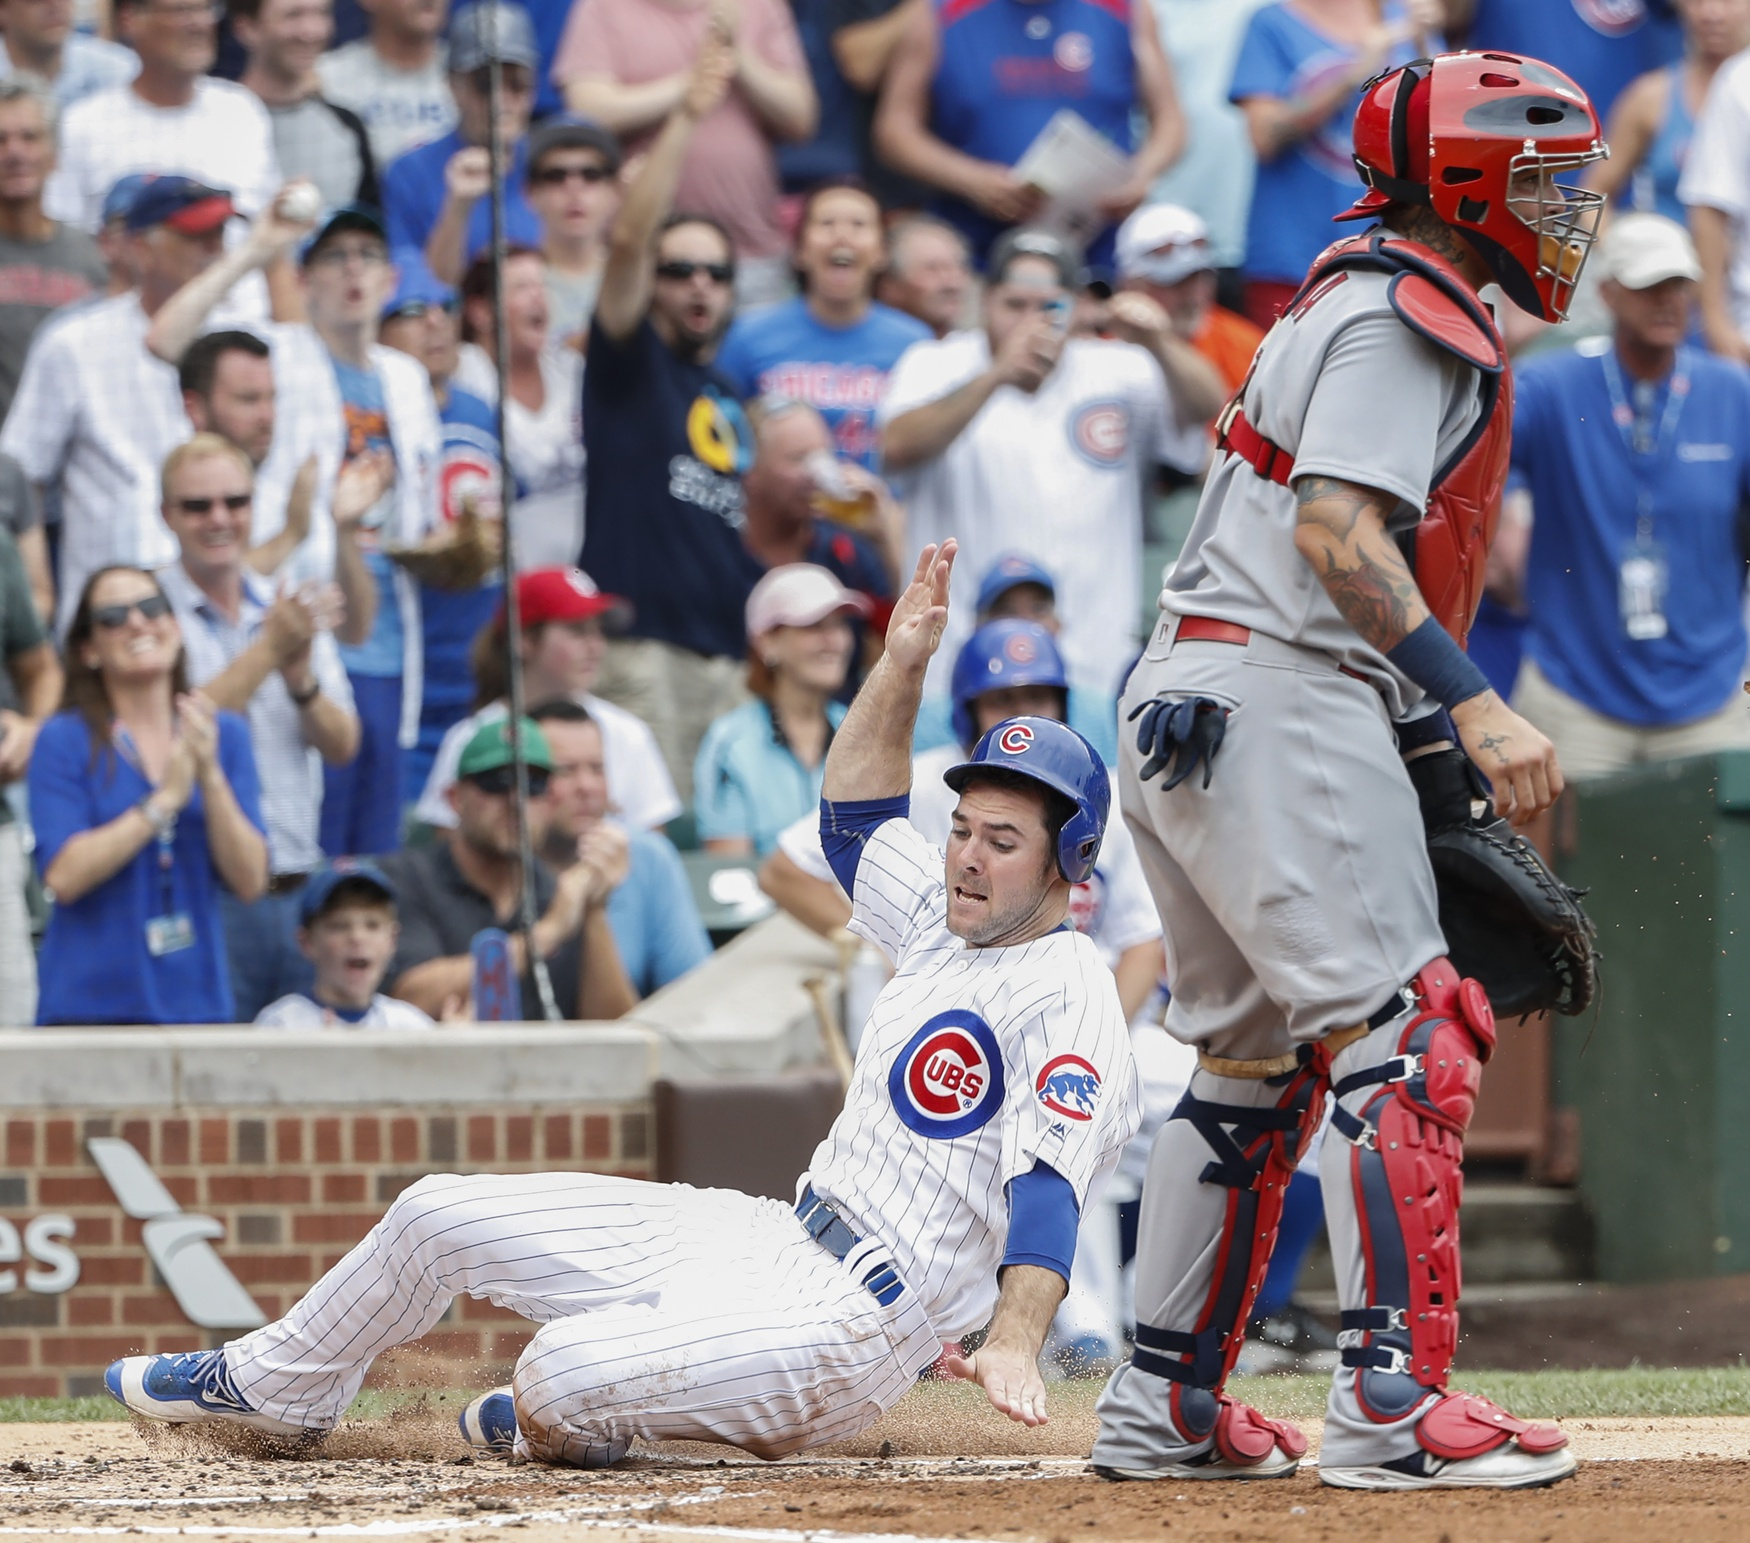 Wainwright's rough start sets tone for Cubs blowout